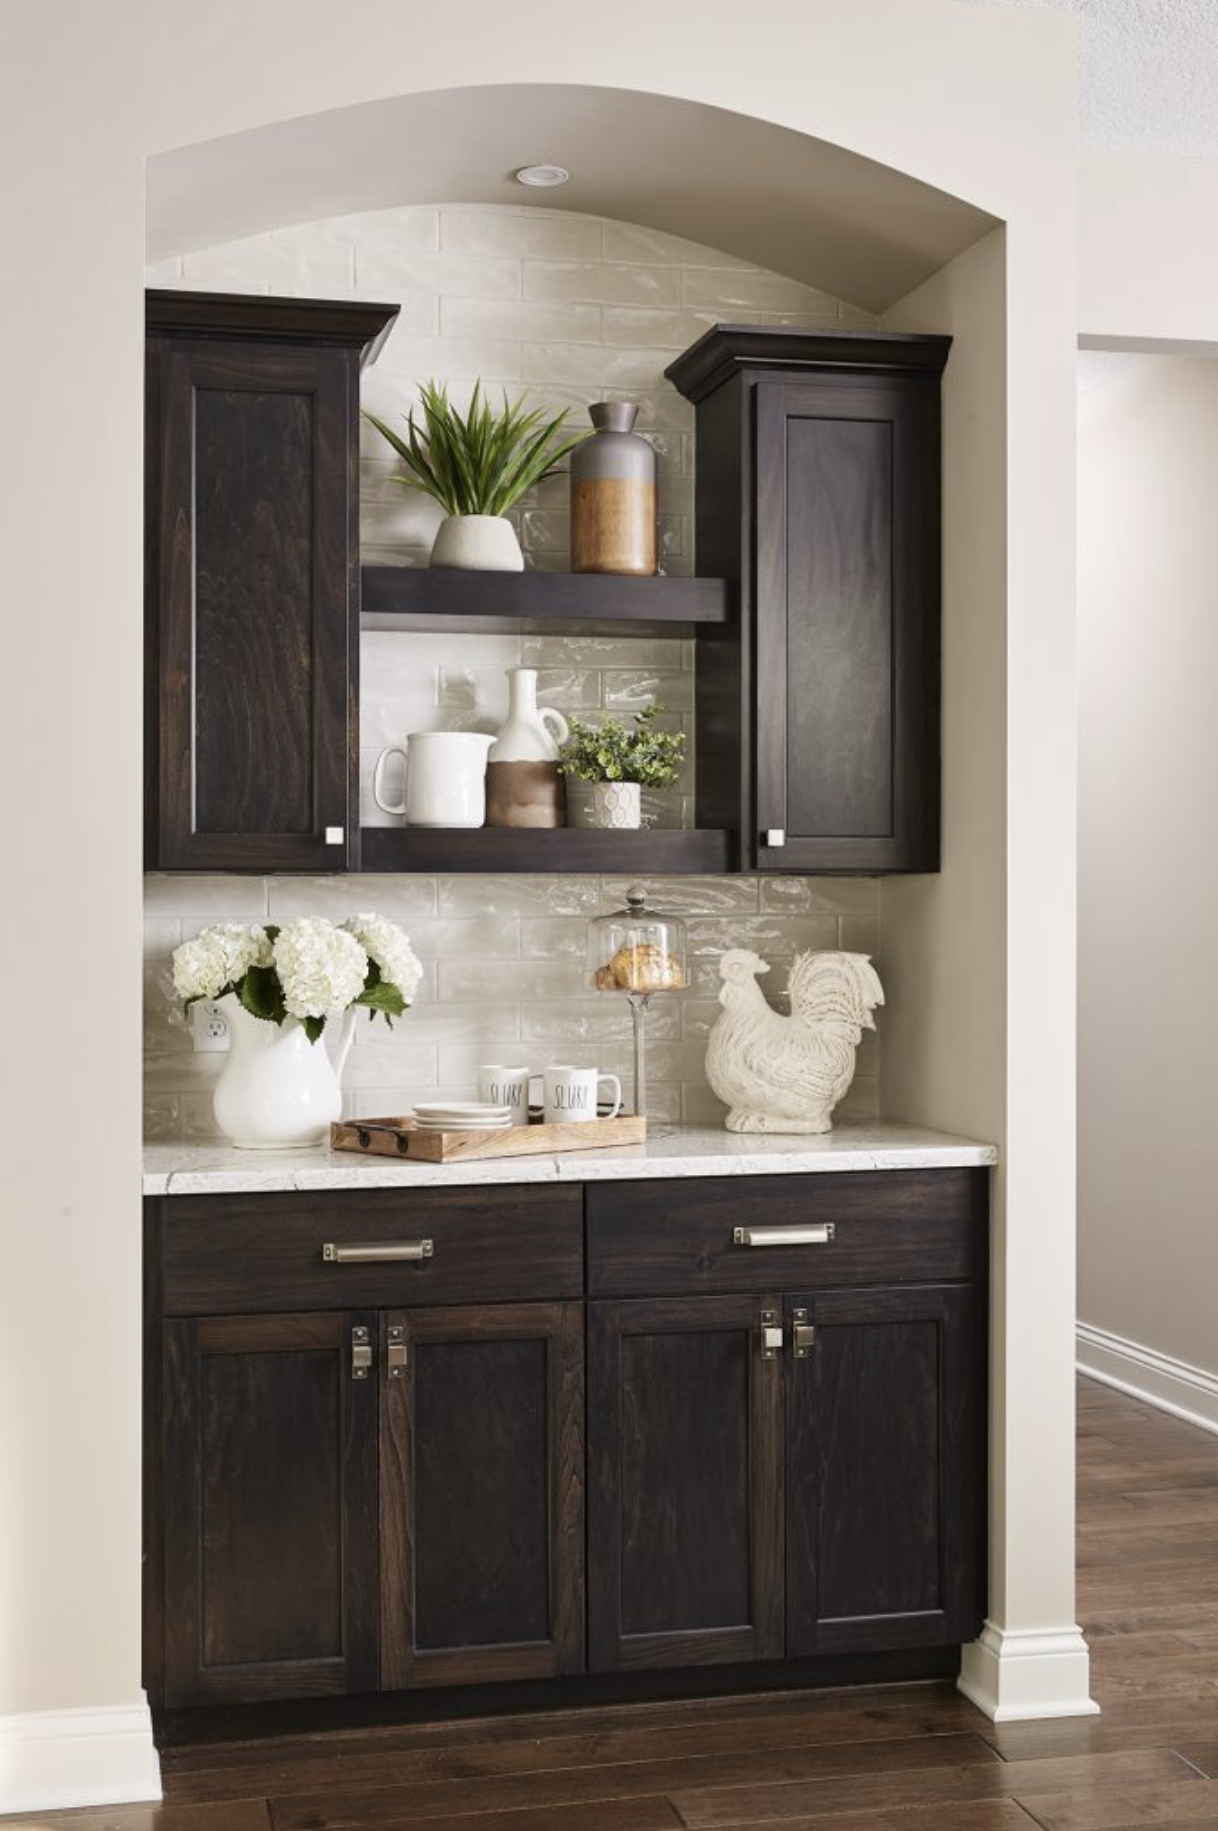 A coffee bar offered an extra storage nook in this kitchen, using wall space strategically and functionally.